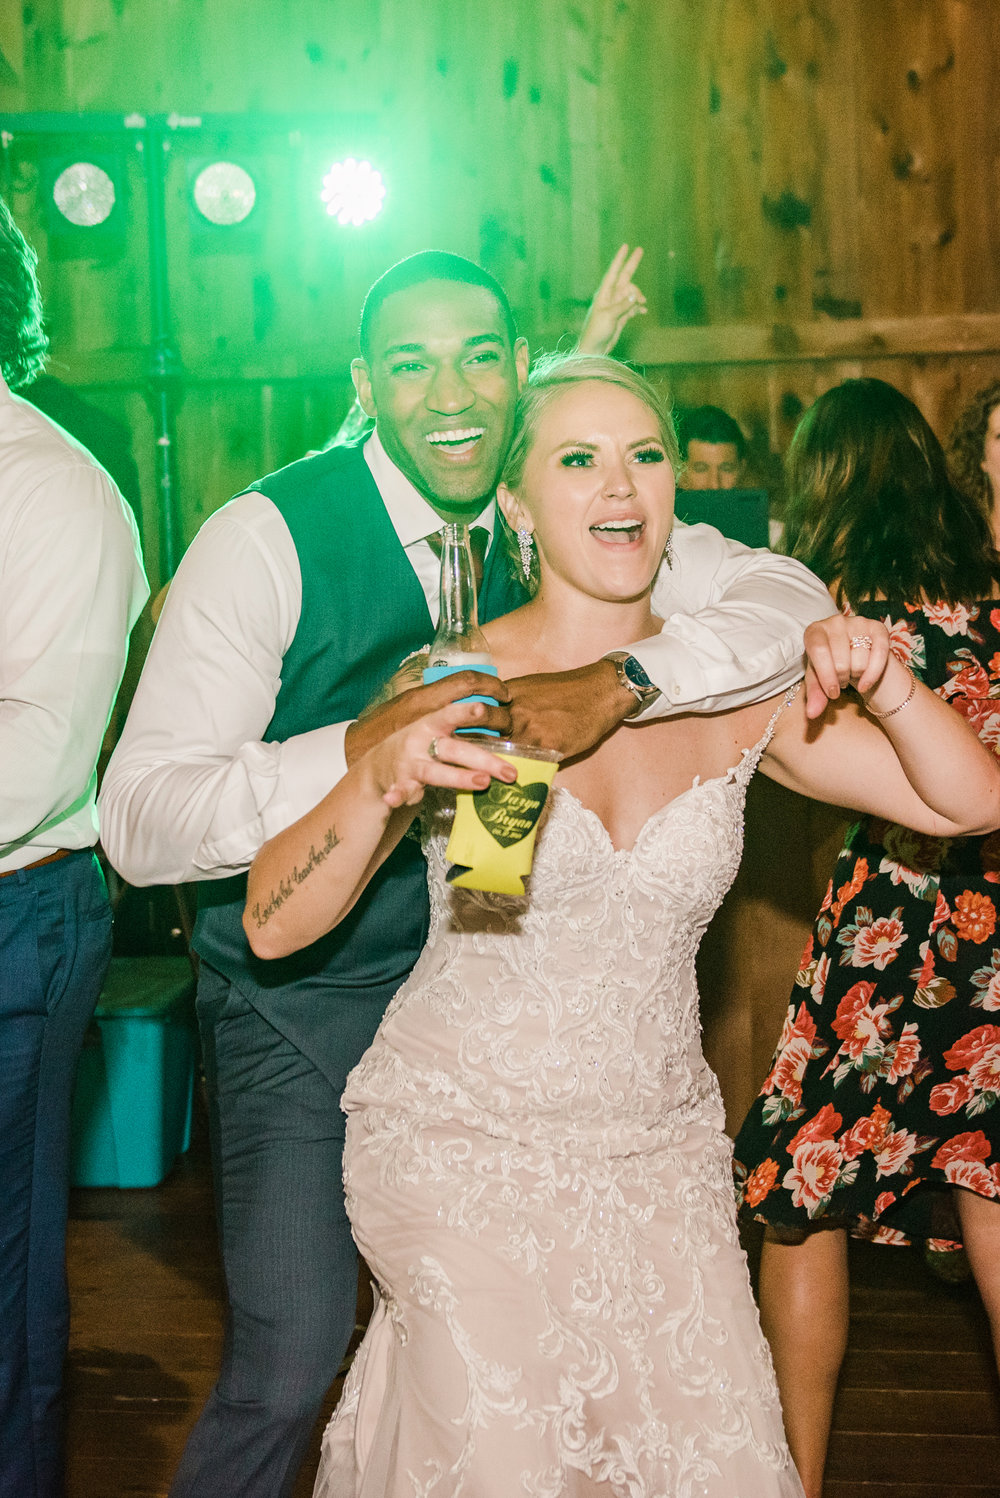 Cobblestone_Wedding_Barn_Rochester_Wedding_JILL_STUDIO_Rochester_NY_Photographer_DSC_8192.jpg